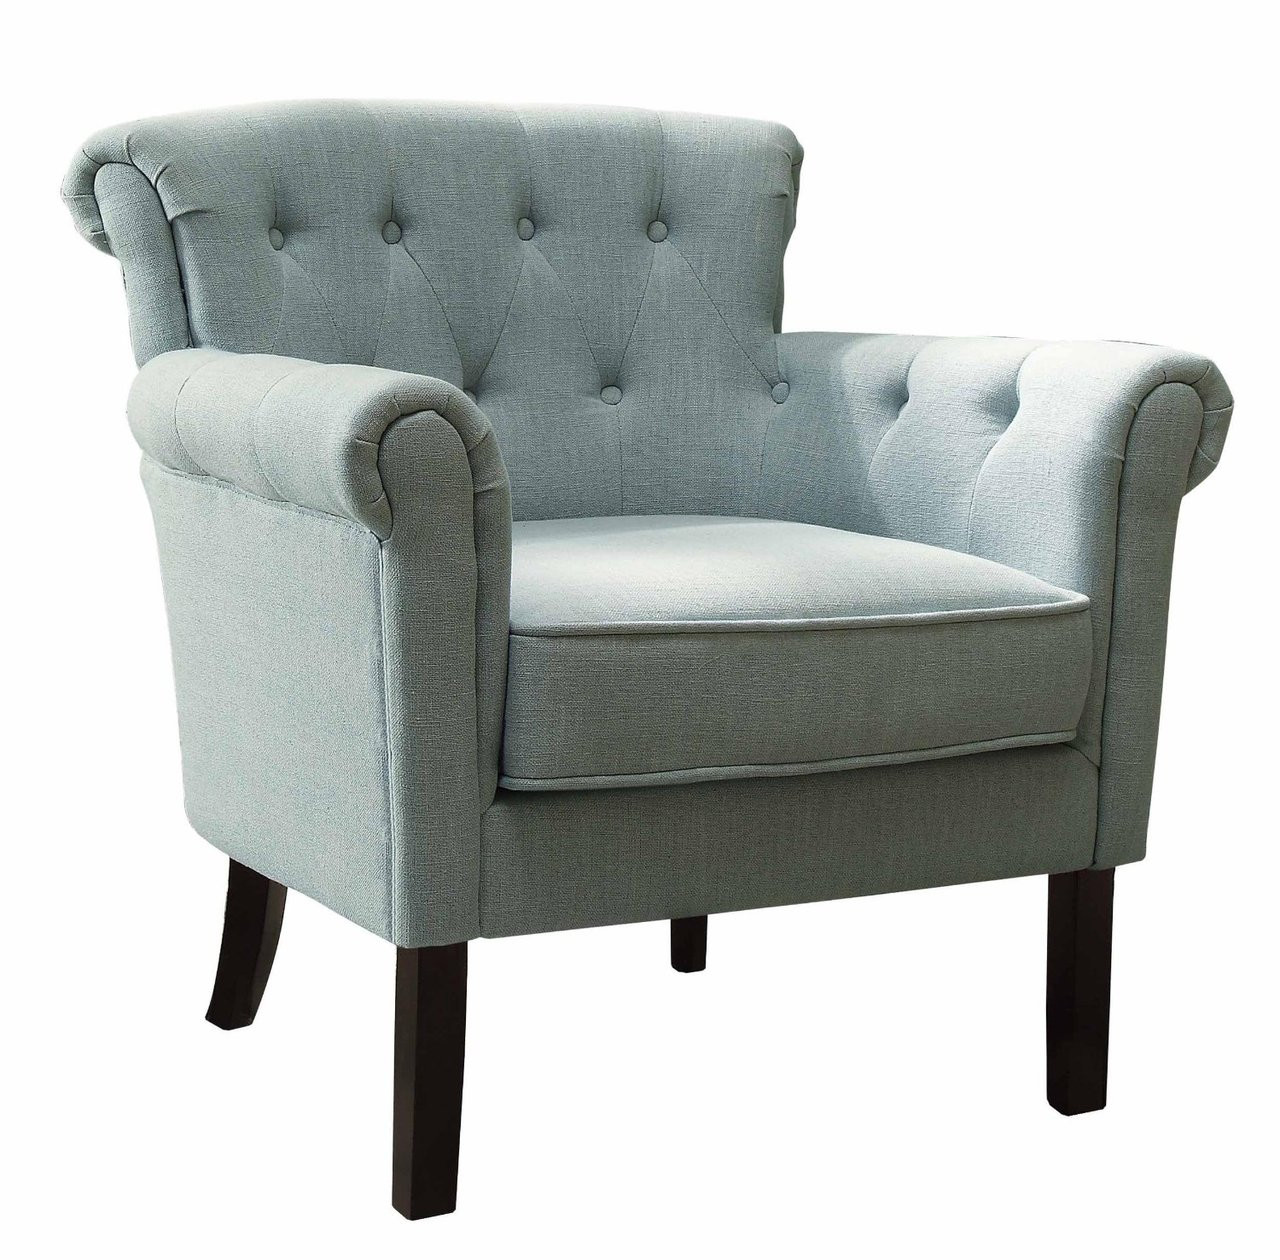 Miraculous Melody Blue Fabric Tufted Back Accent Arm Chair Caraccident5 Cool Chair Designs And Ideas Caraccident5Info